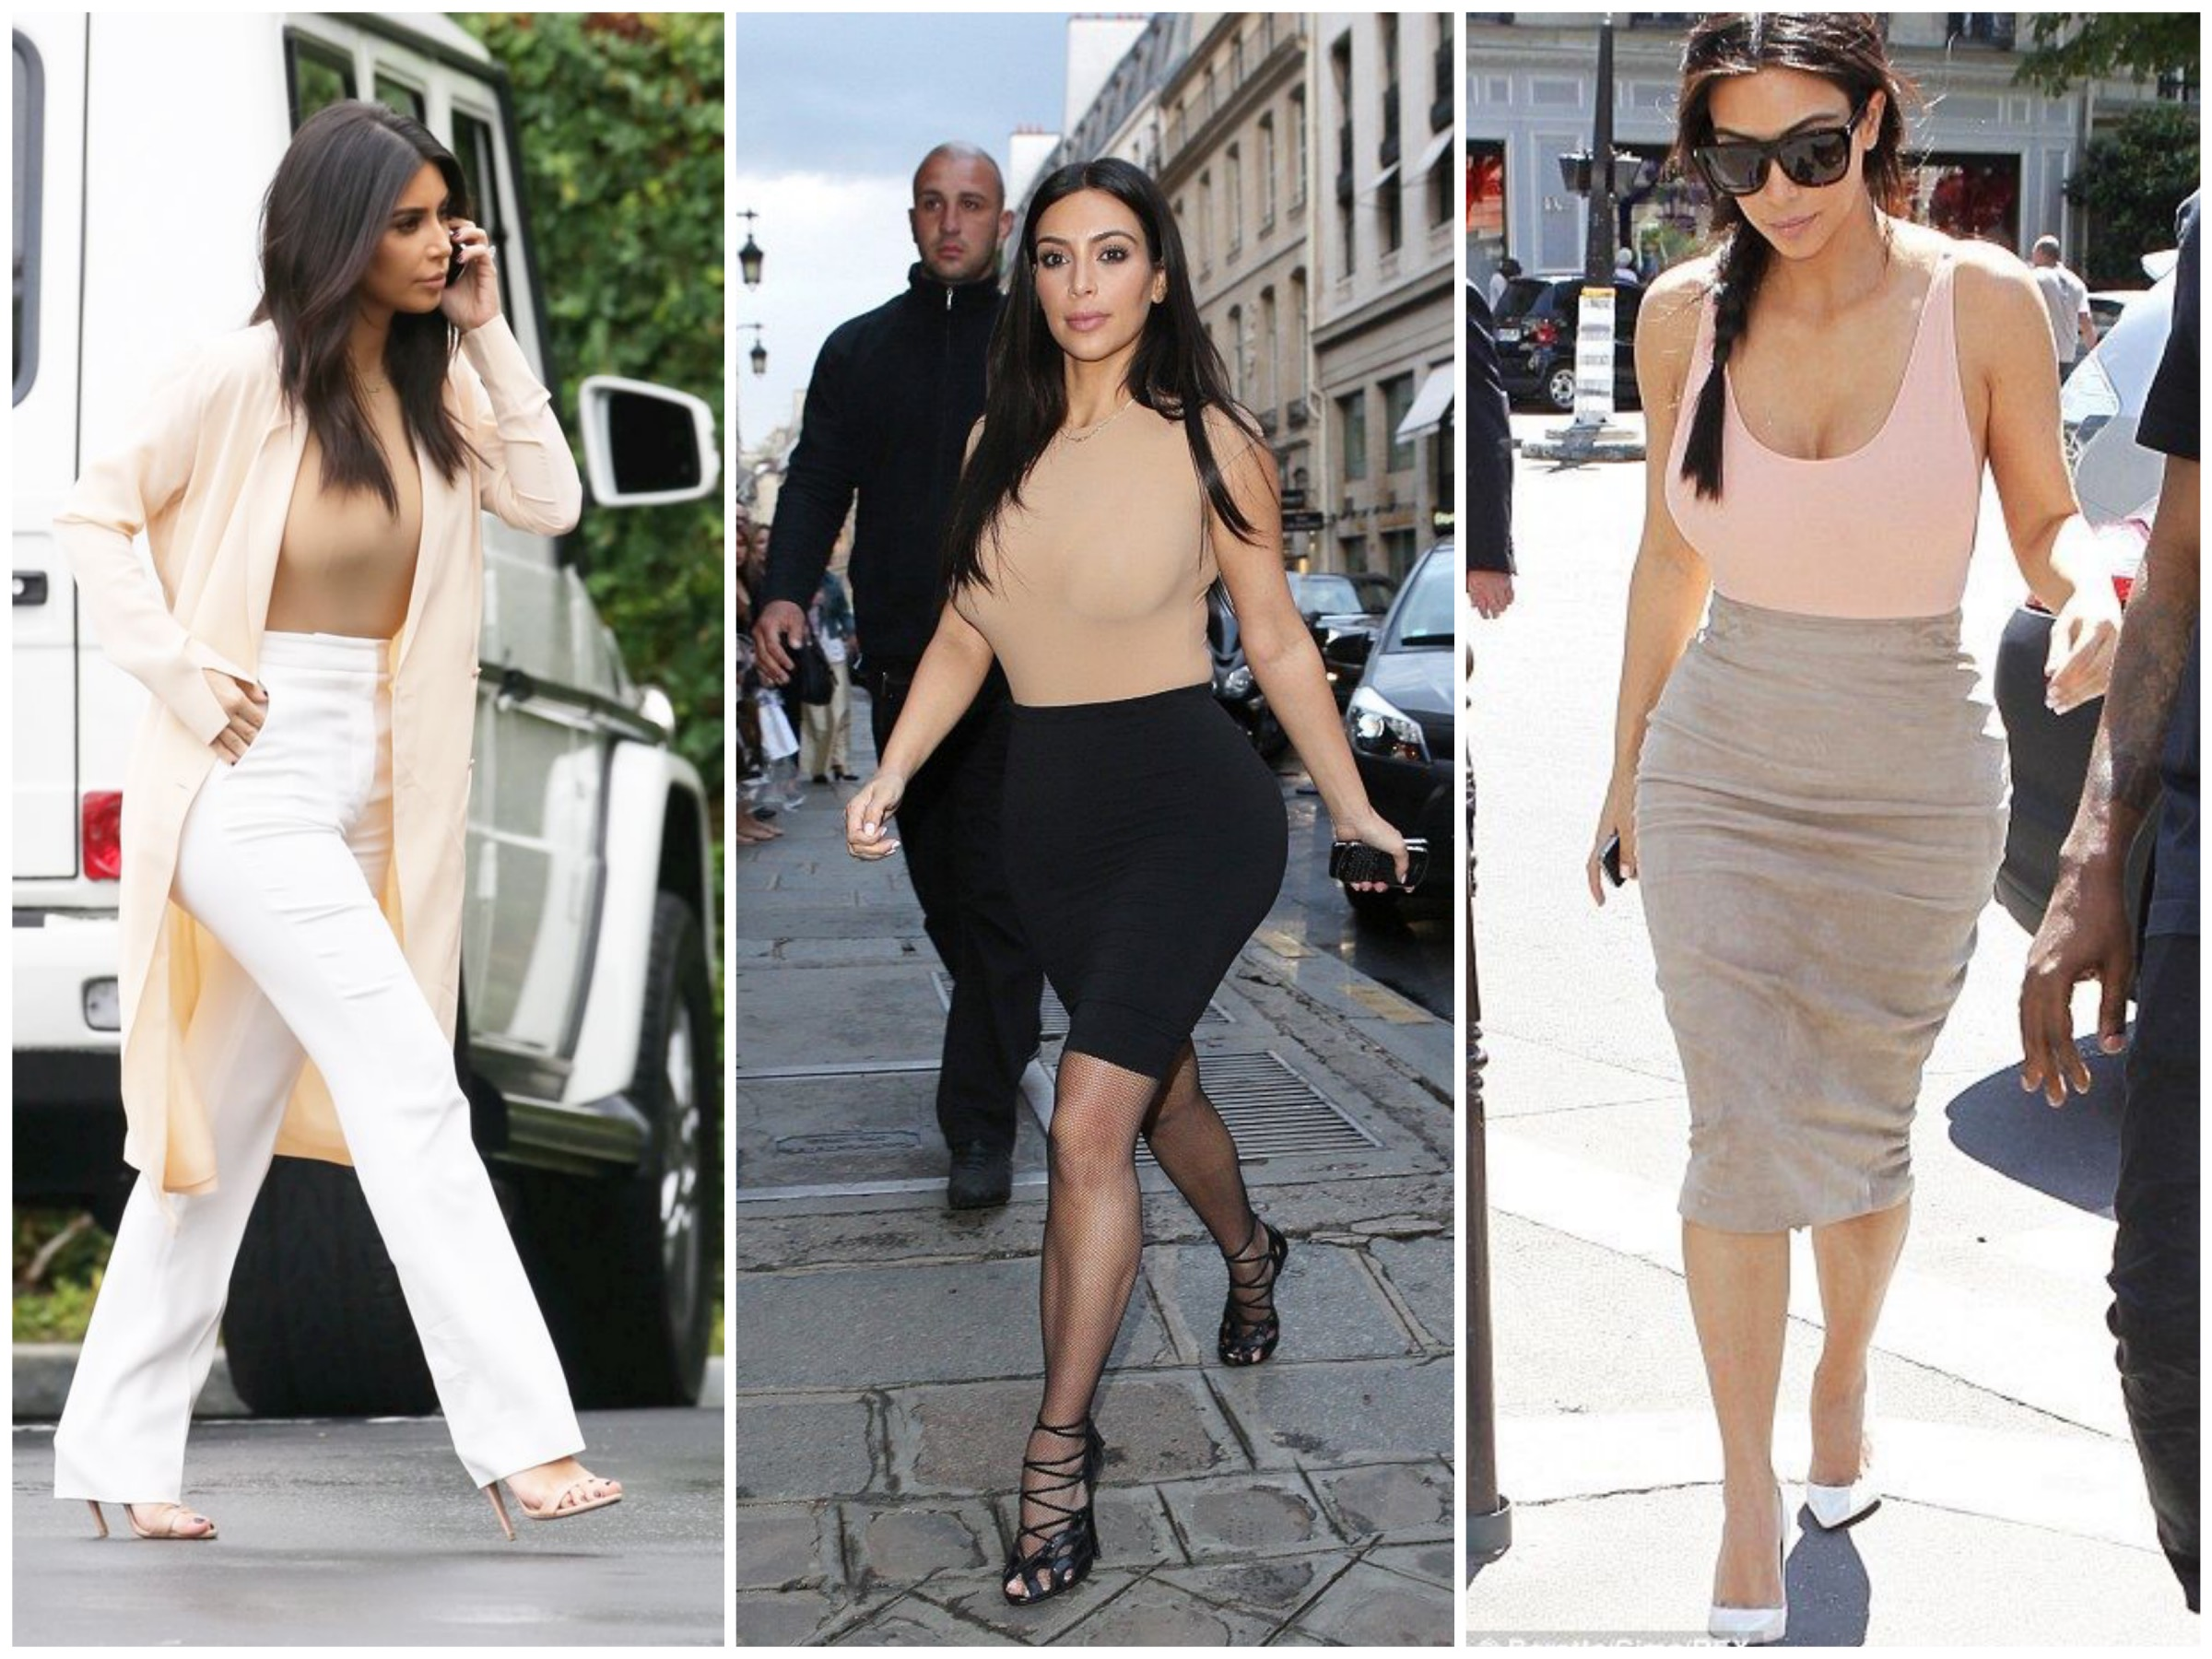 Kim's style after Kanye - Wearing nude